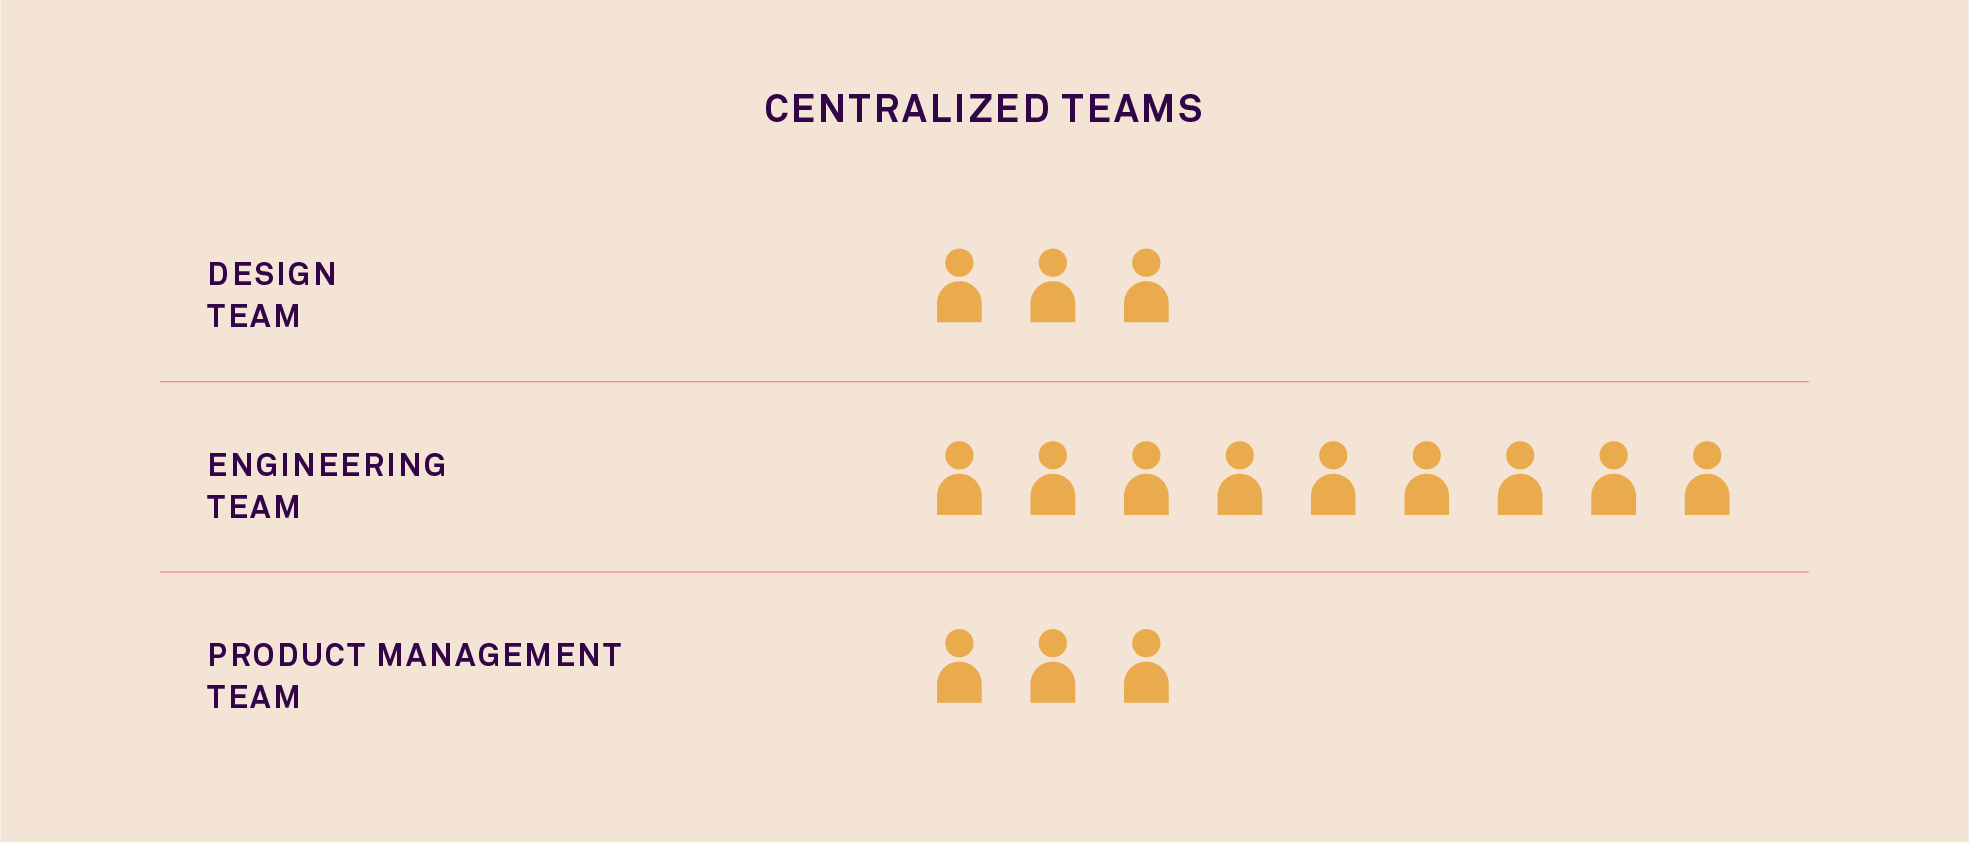 centralized design team